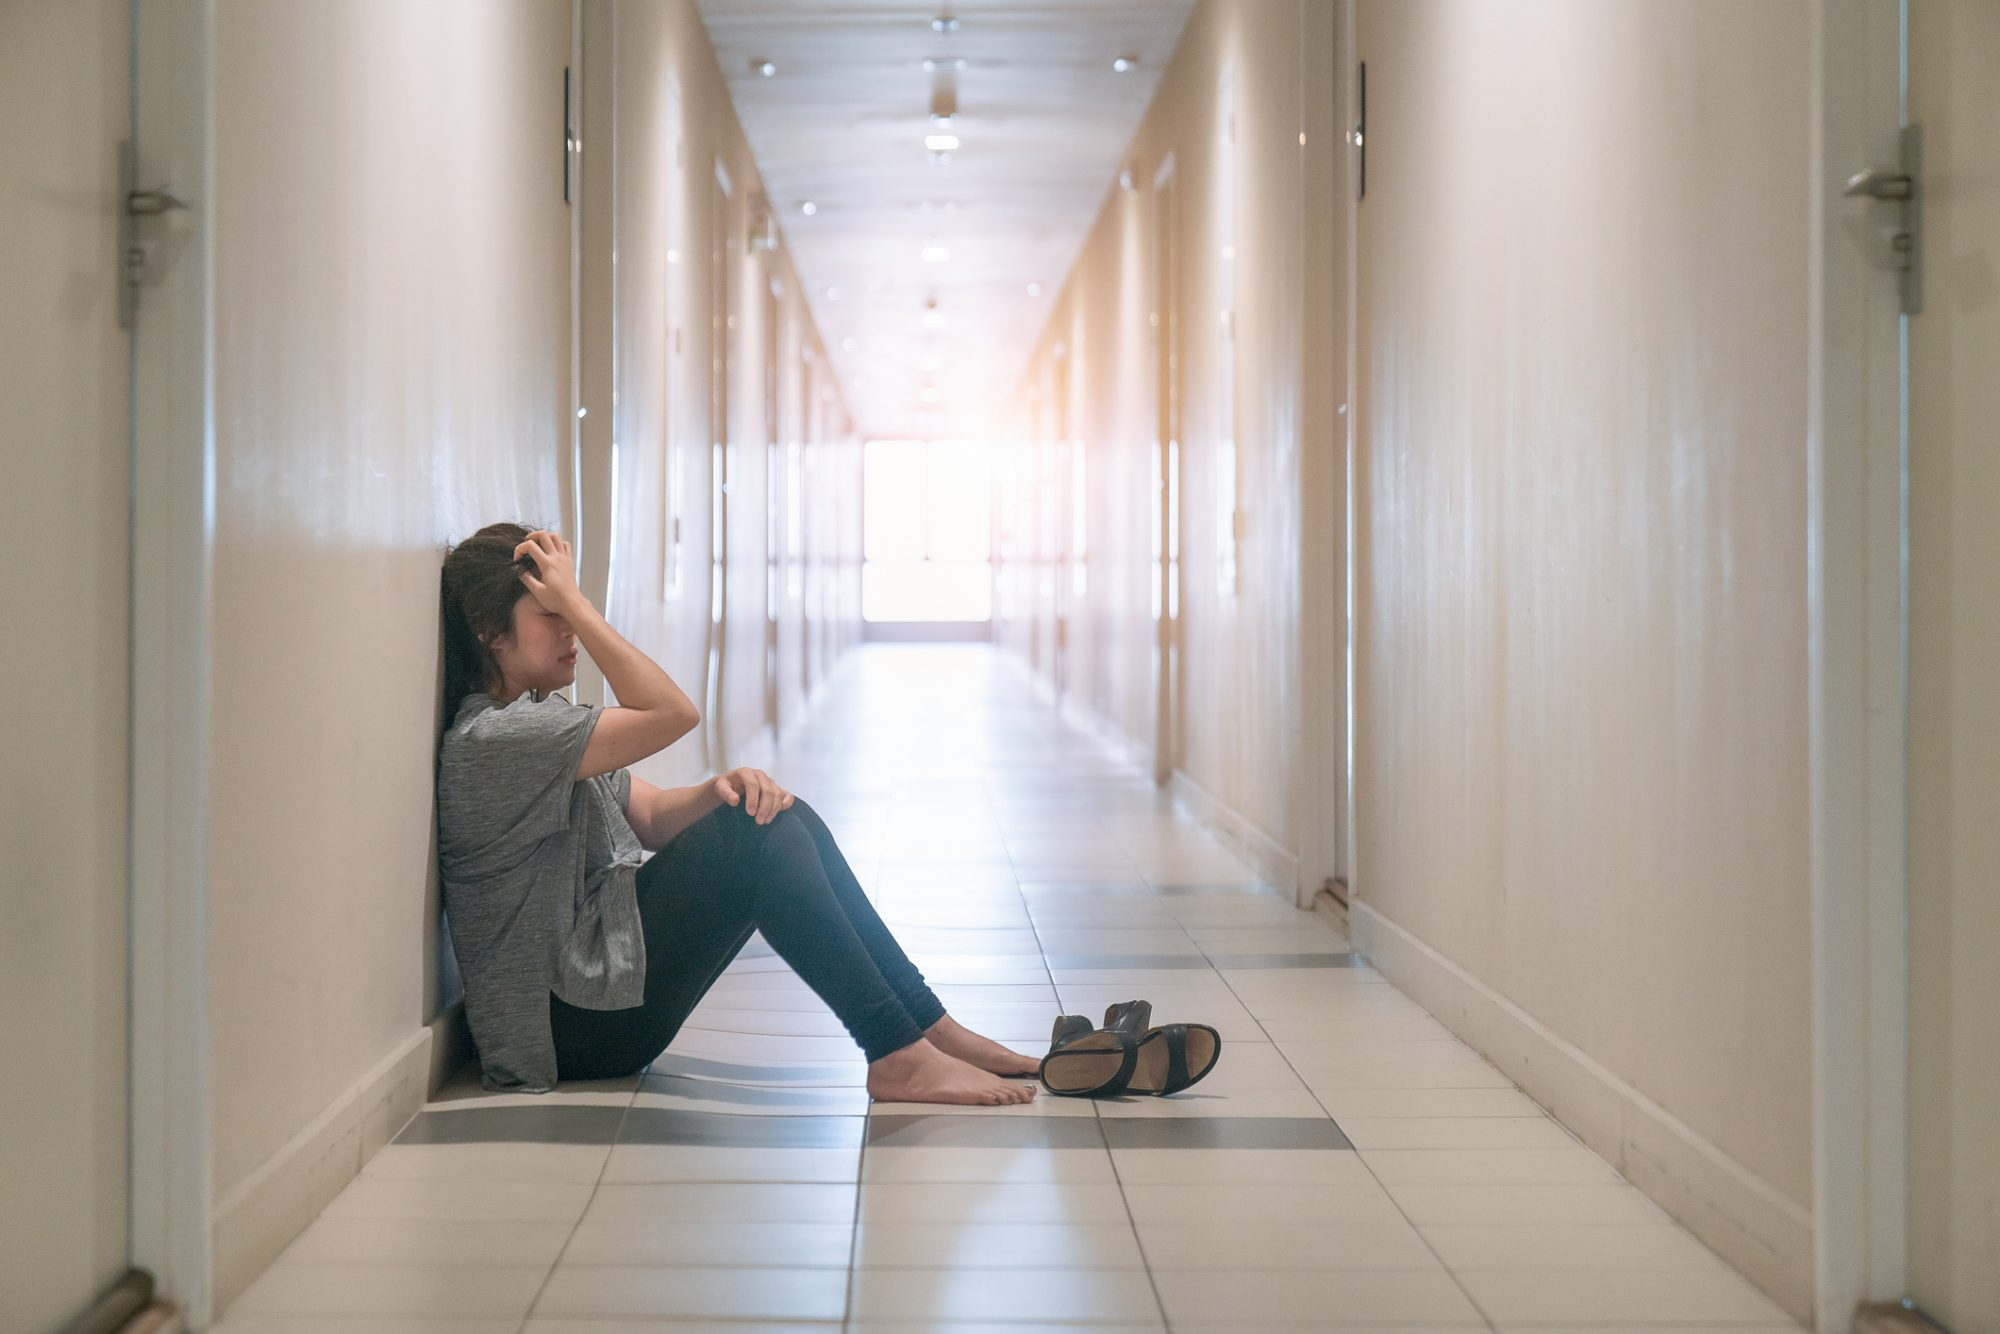 sad woman sitting in hallway